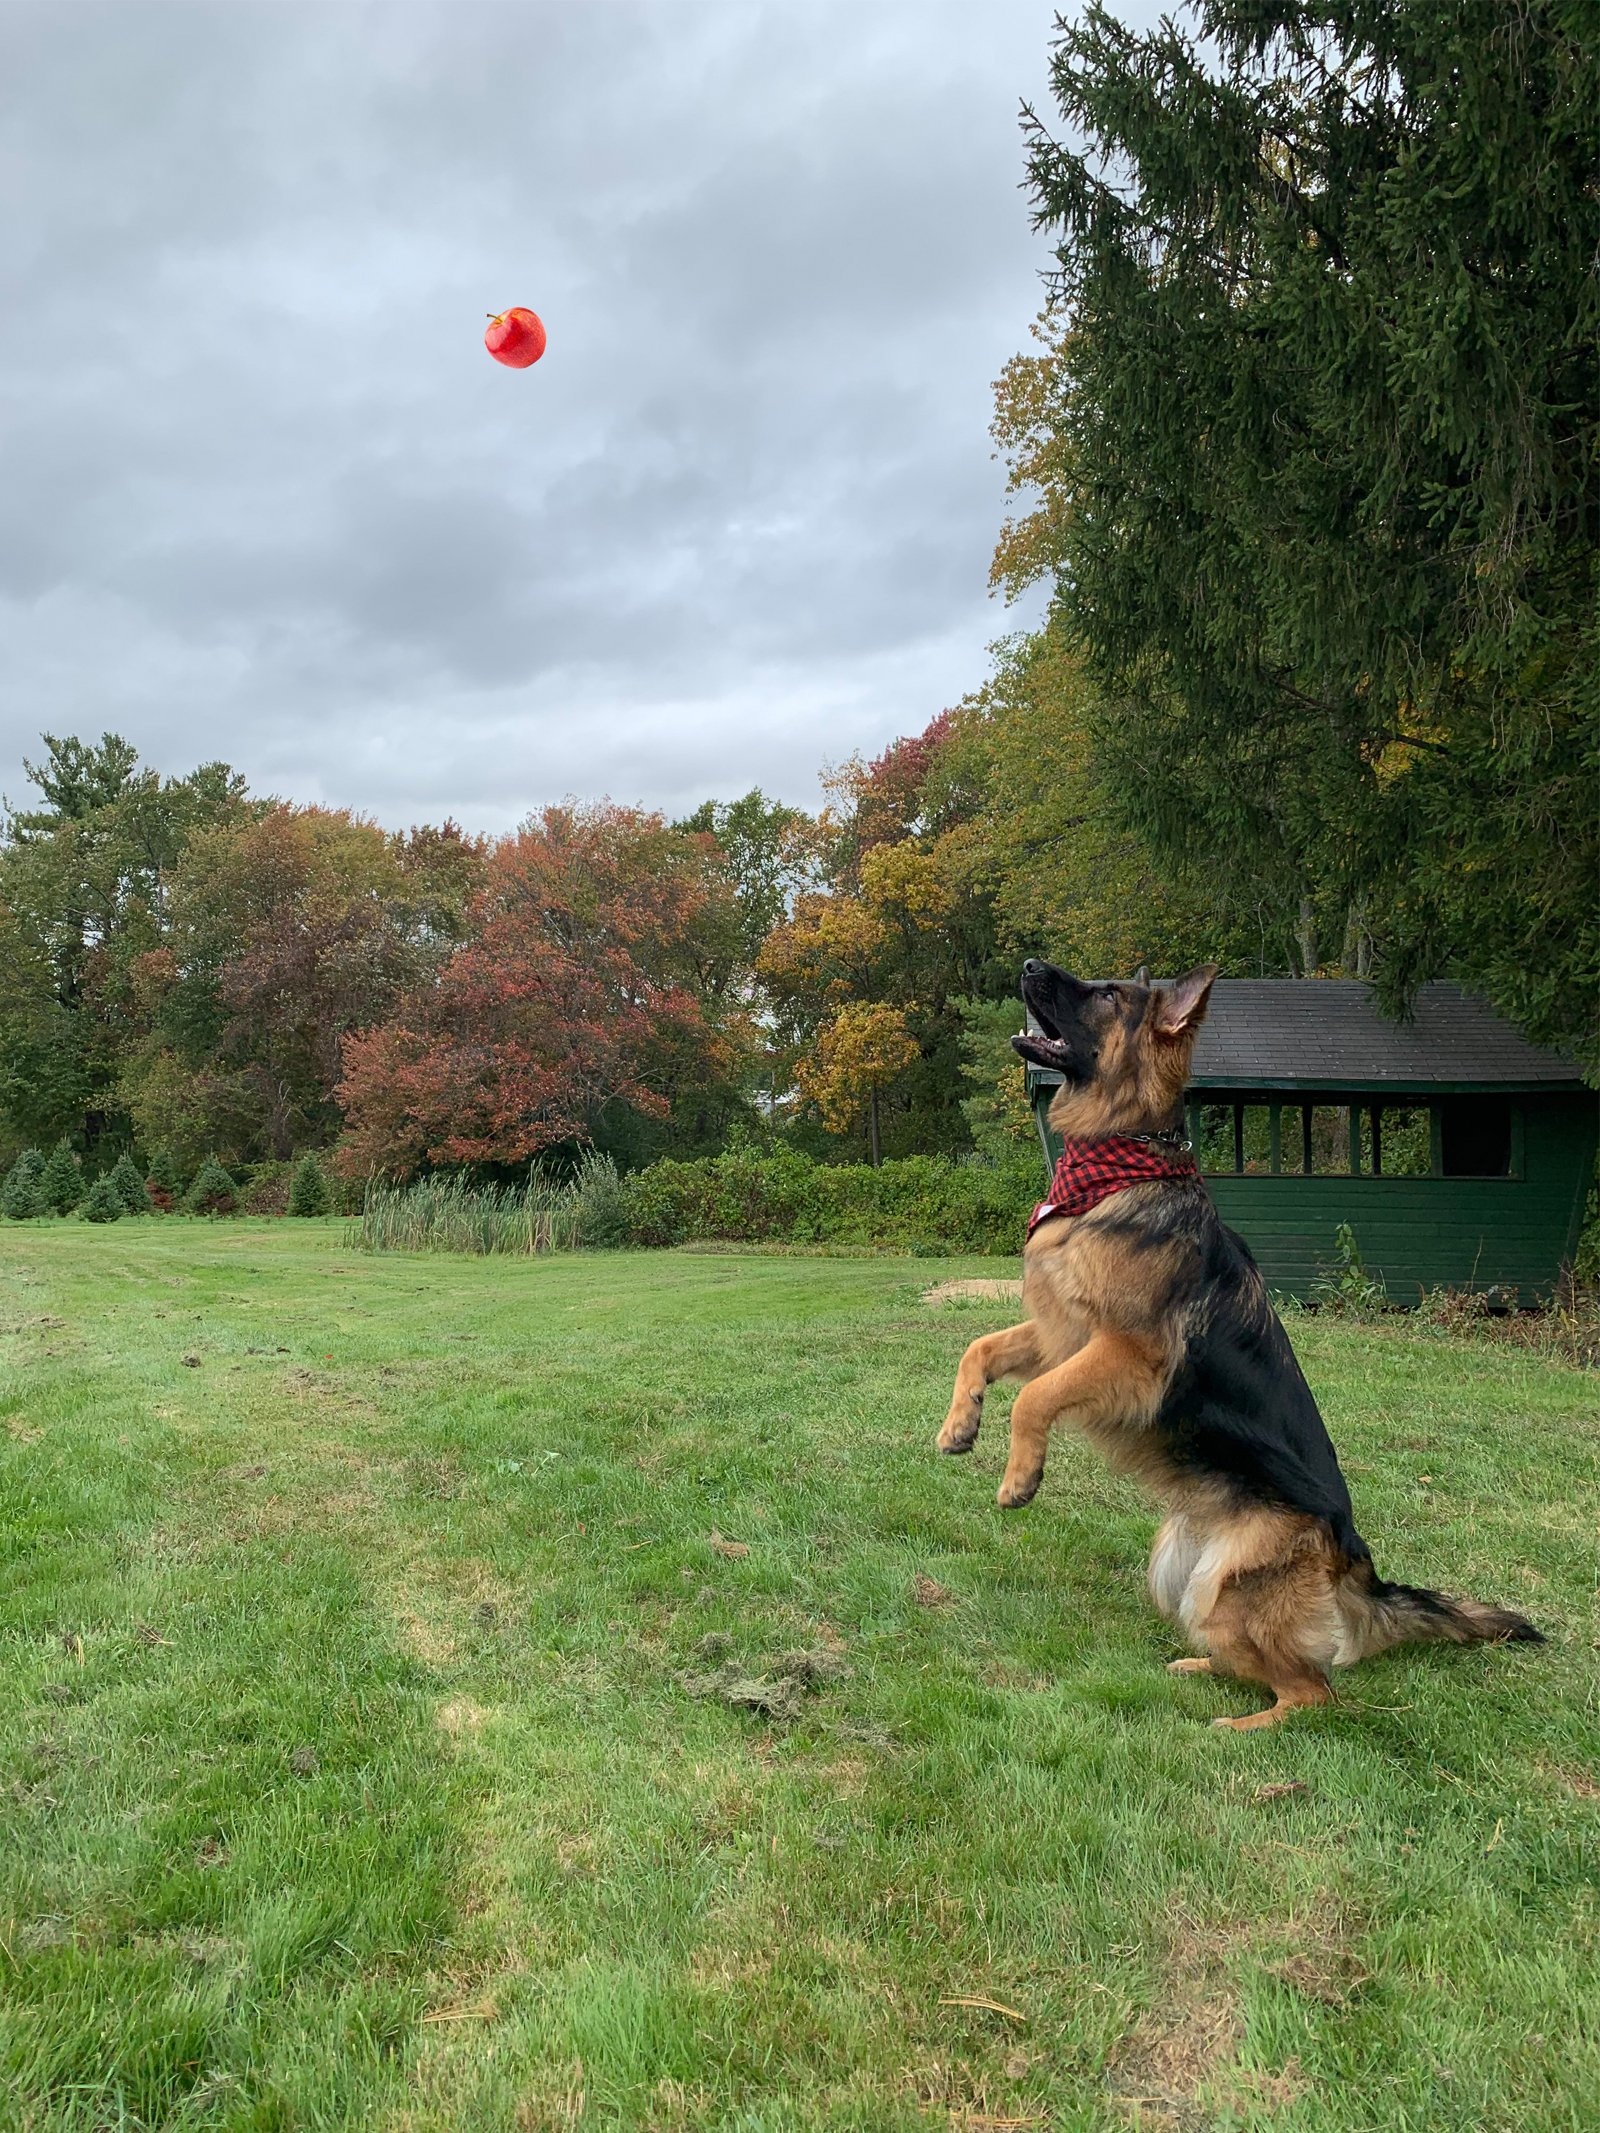 a dog jumping for an apple at a dog-friendly apple orchard in Massachusetts